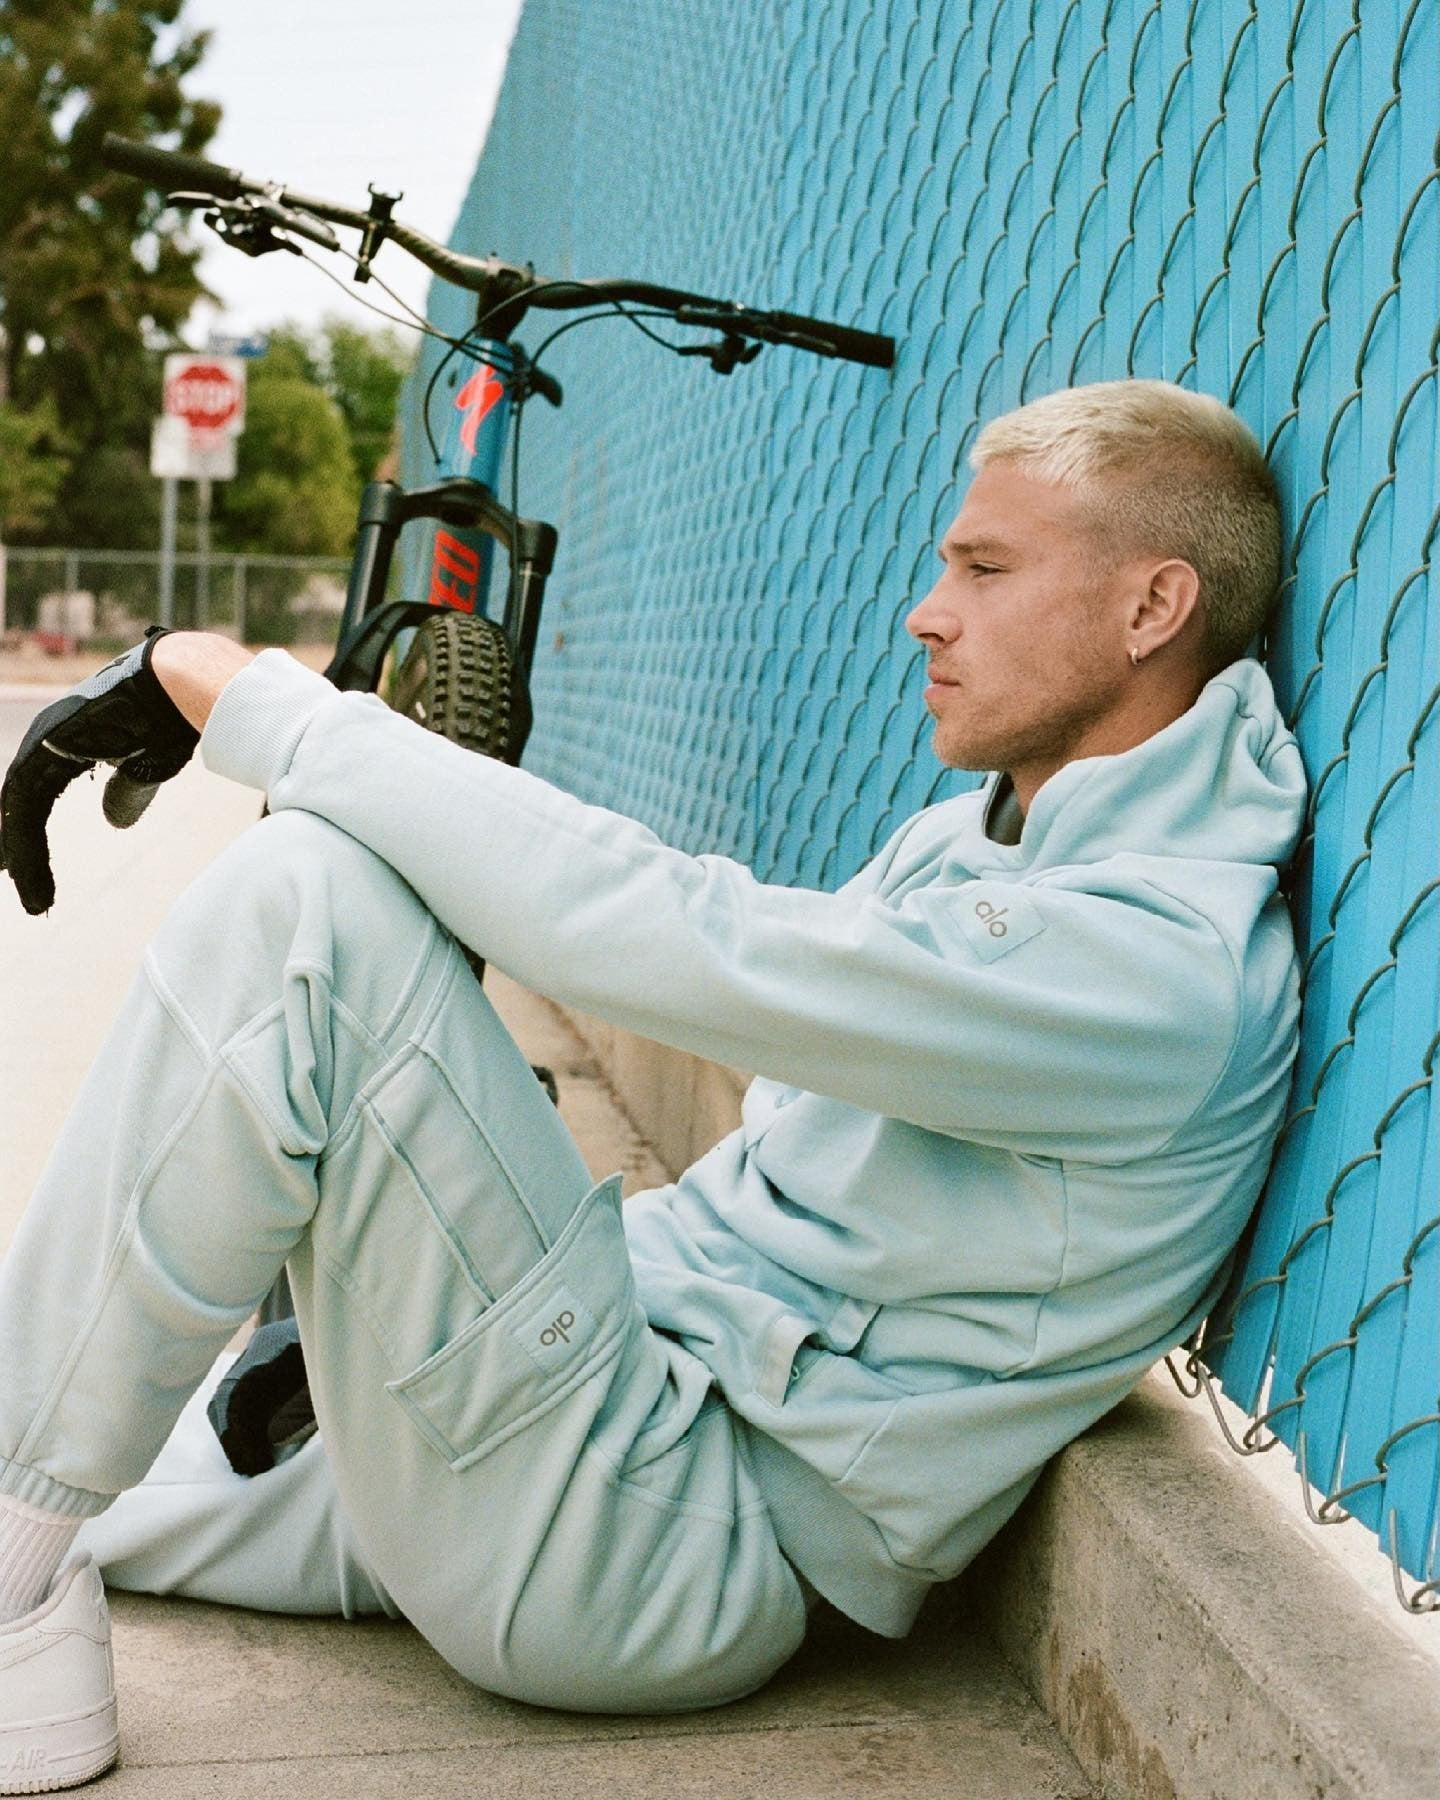 @matthew_noszka wearing the Highline Hoodie and Highline Cargo Sweatpant in Chalk Blue during a bike ride around town.